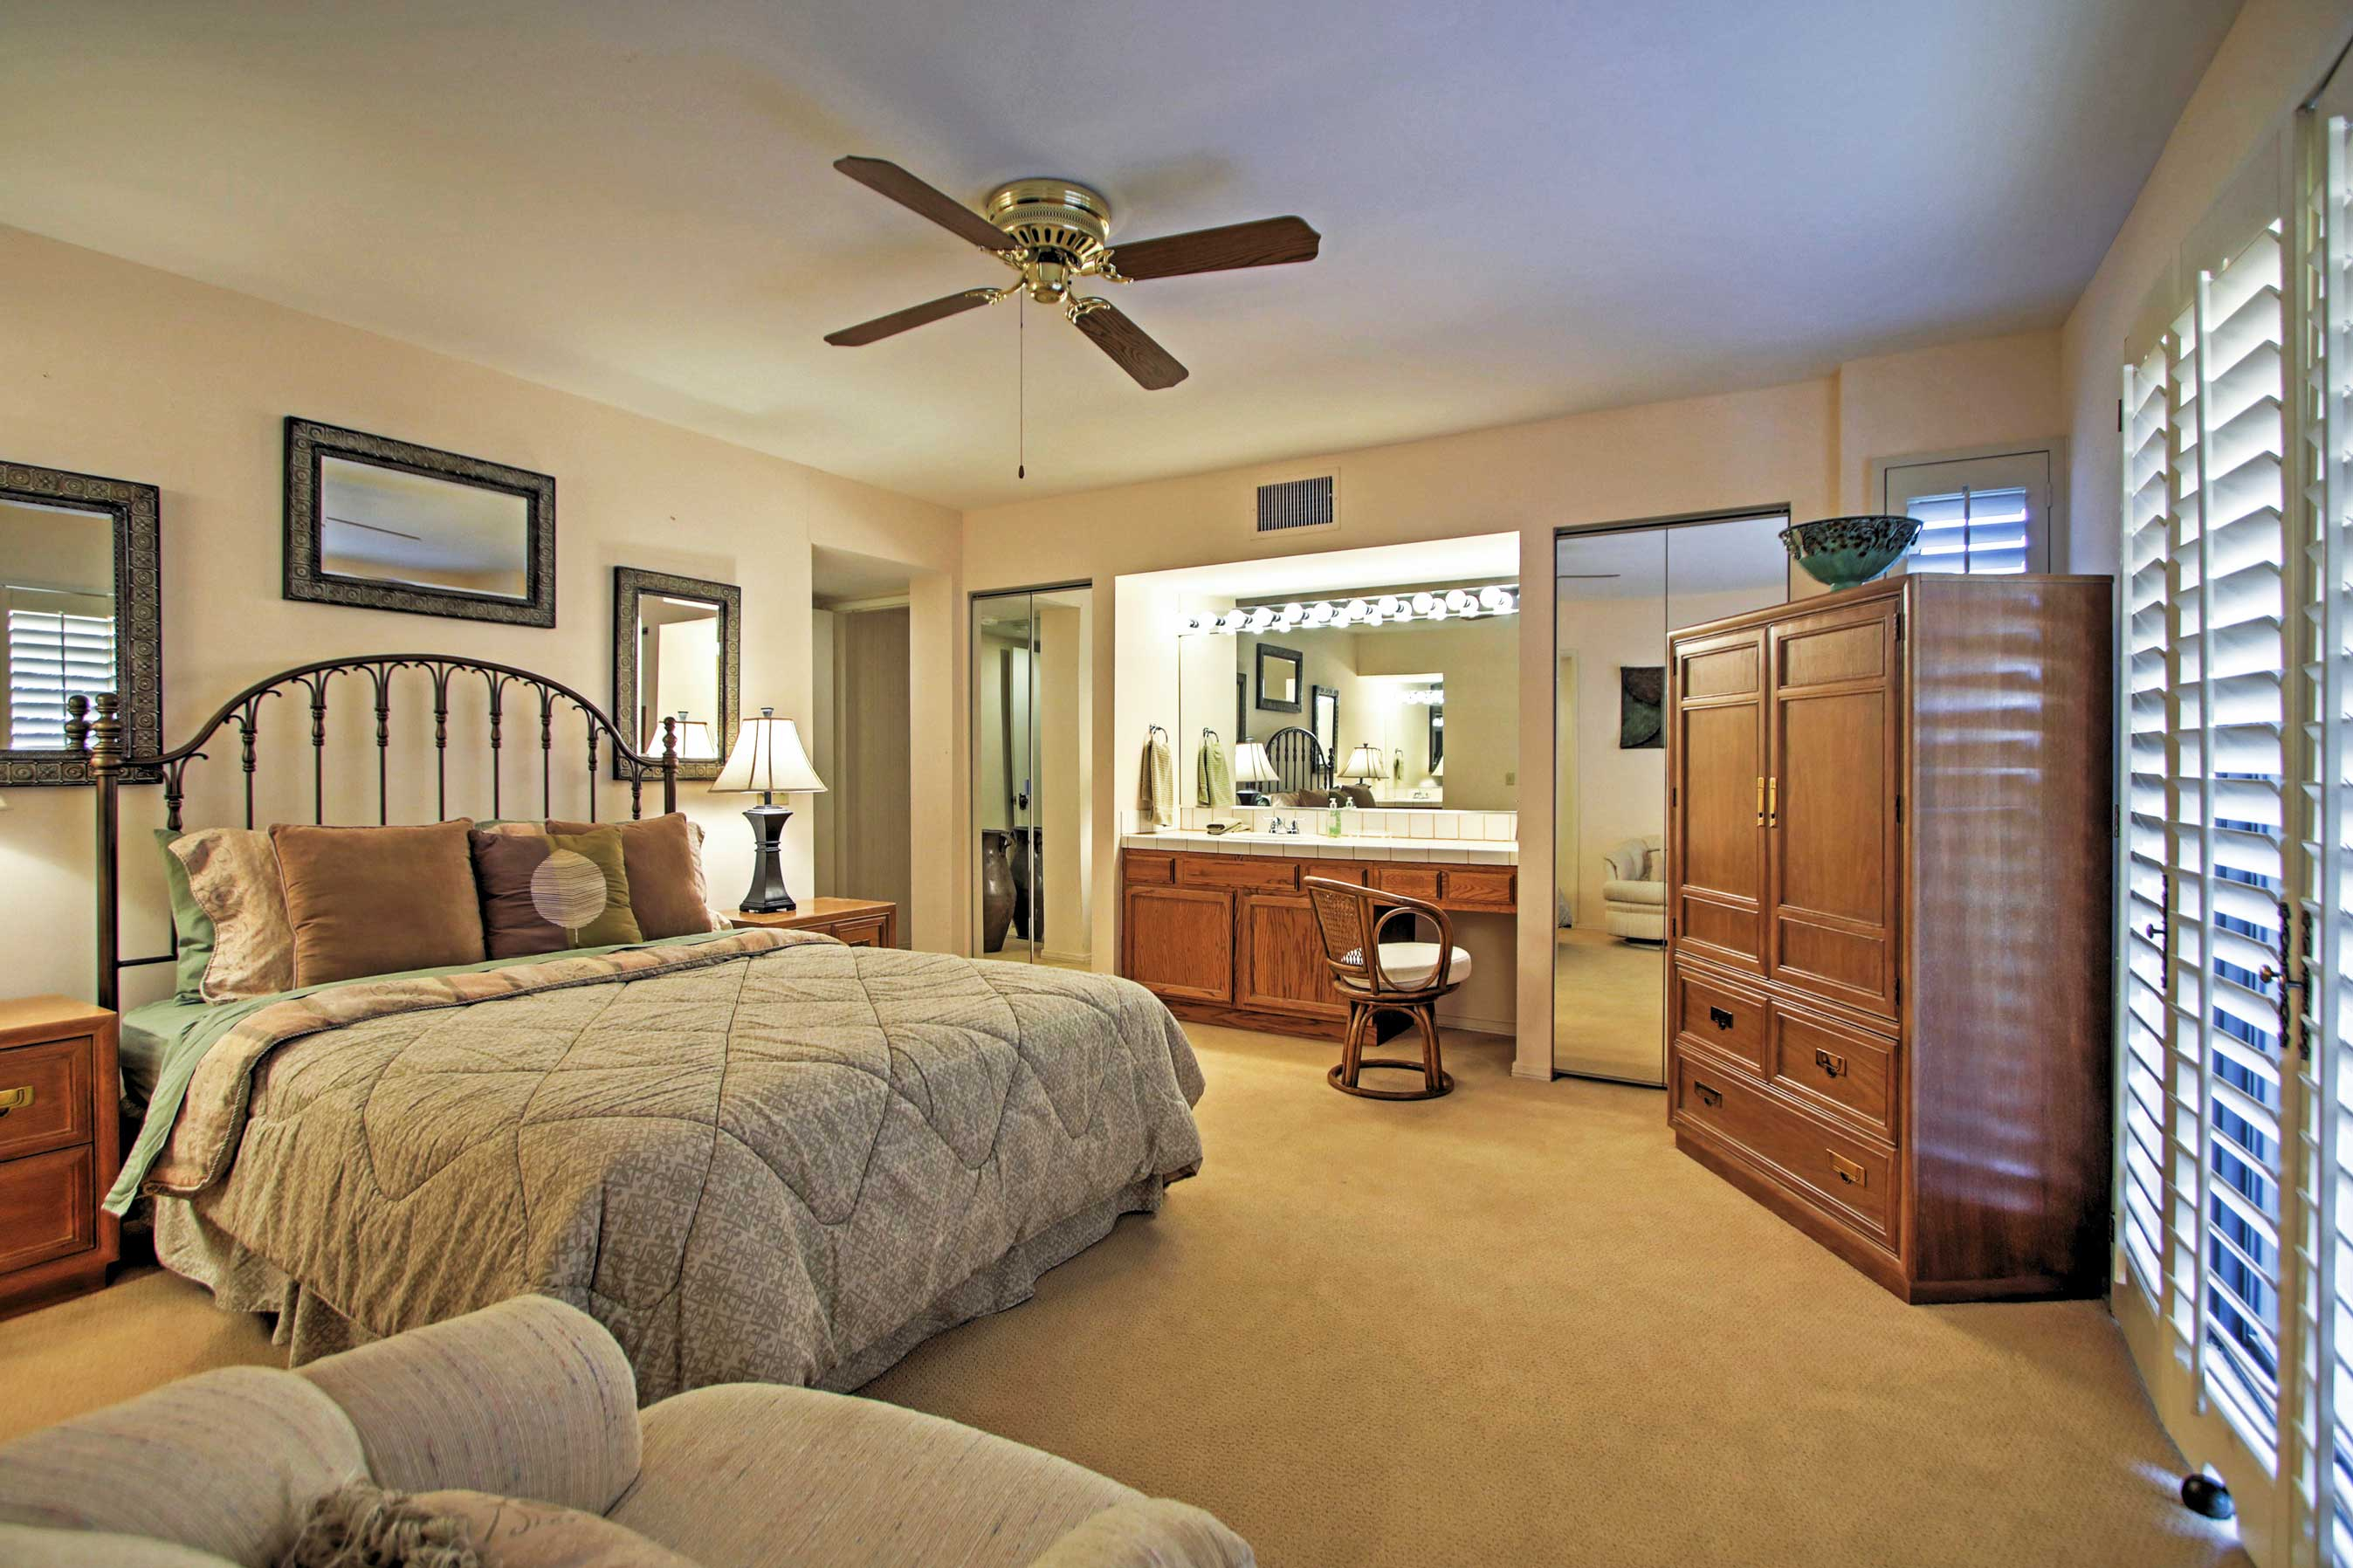 This master bedroom has a queen-sized bed.